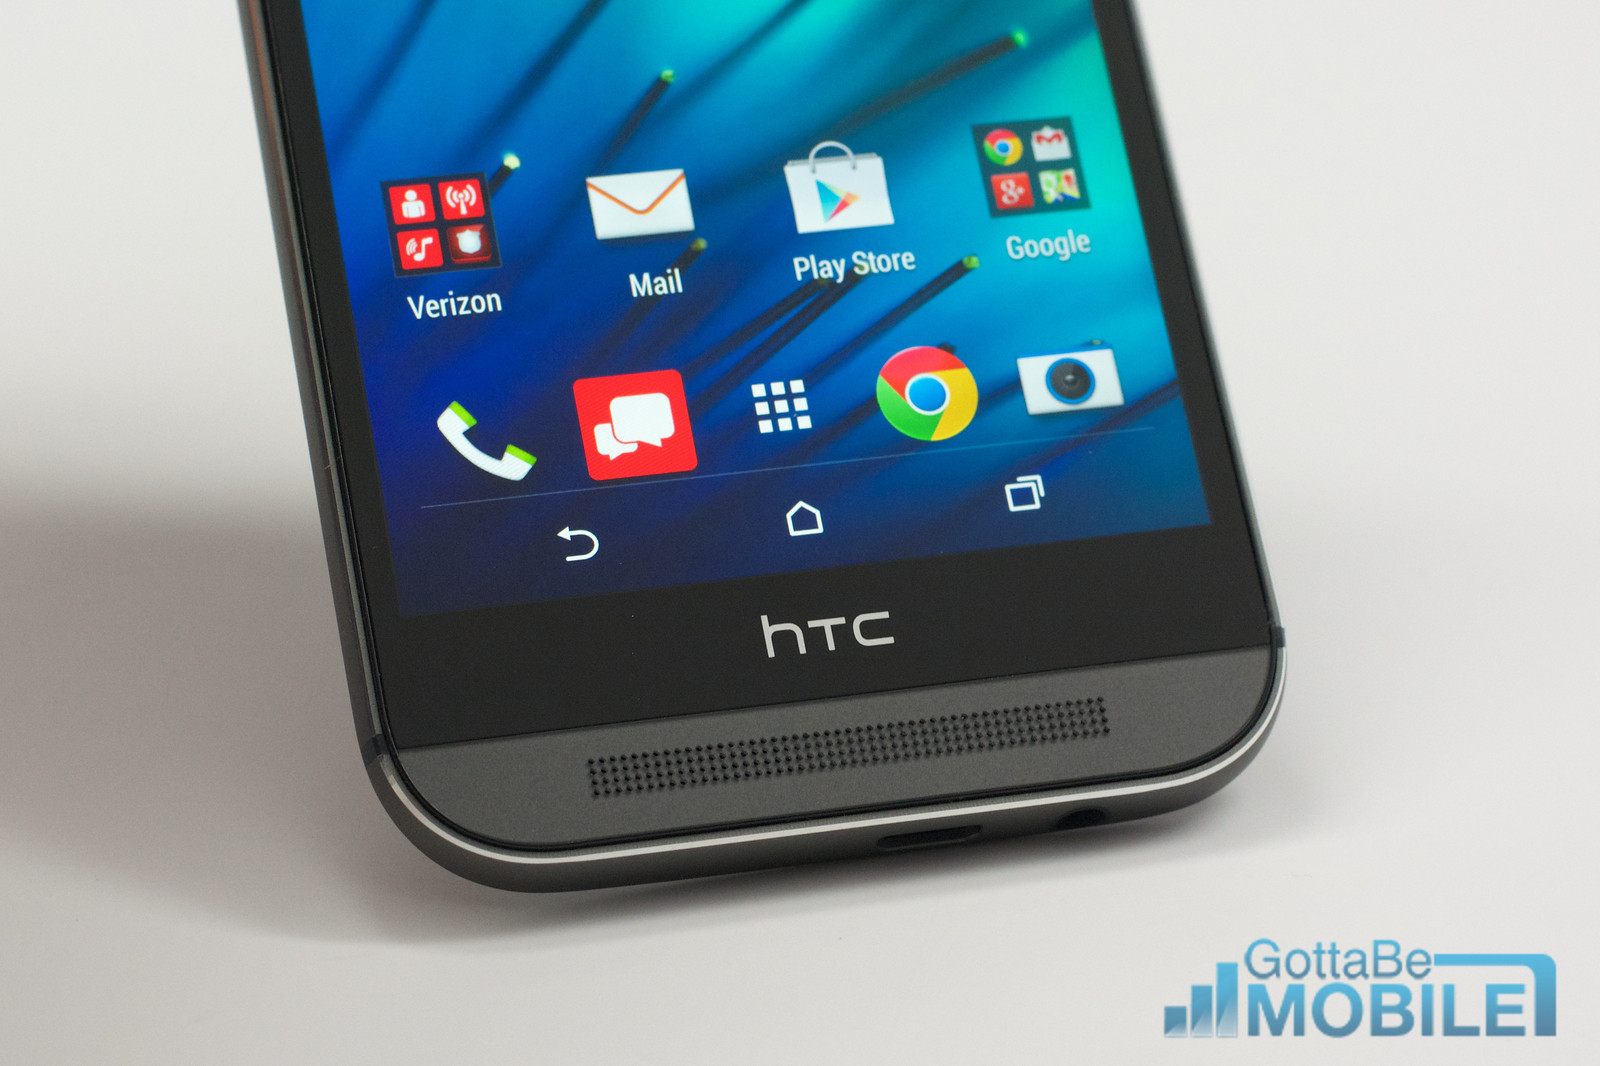 HTC One M8 Android 5.0 Lollipop Update Continues